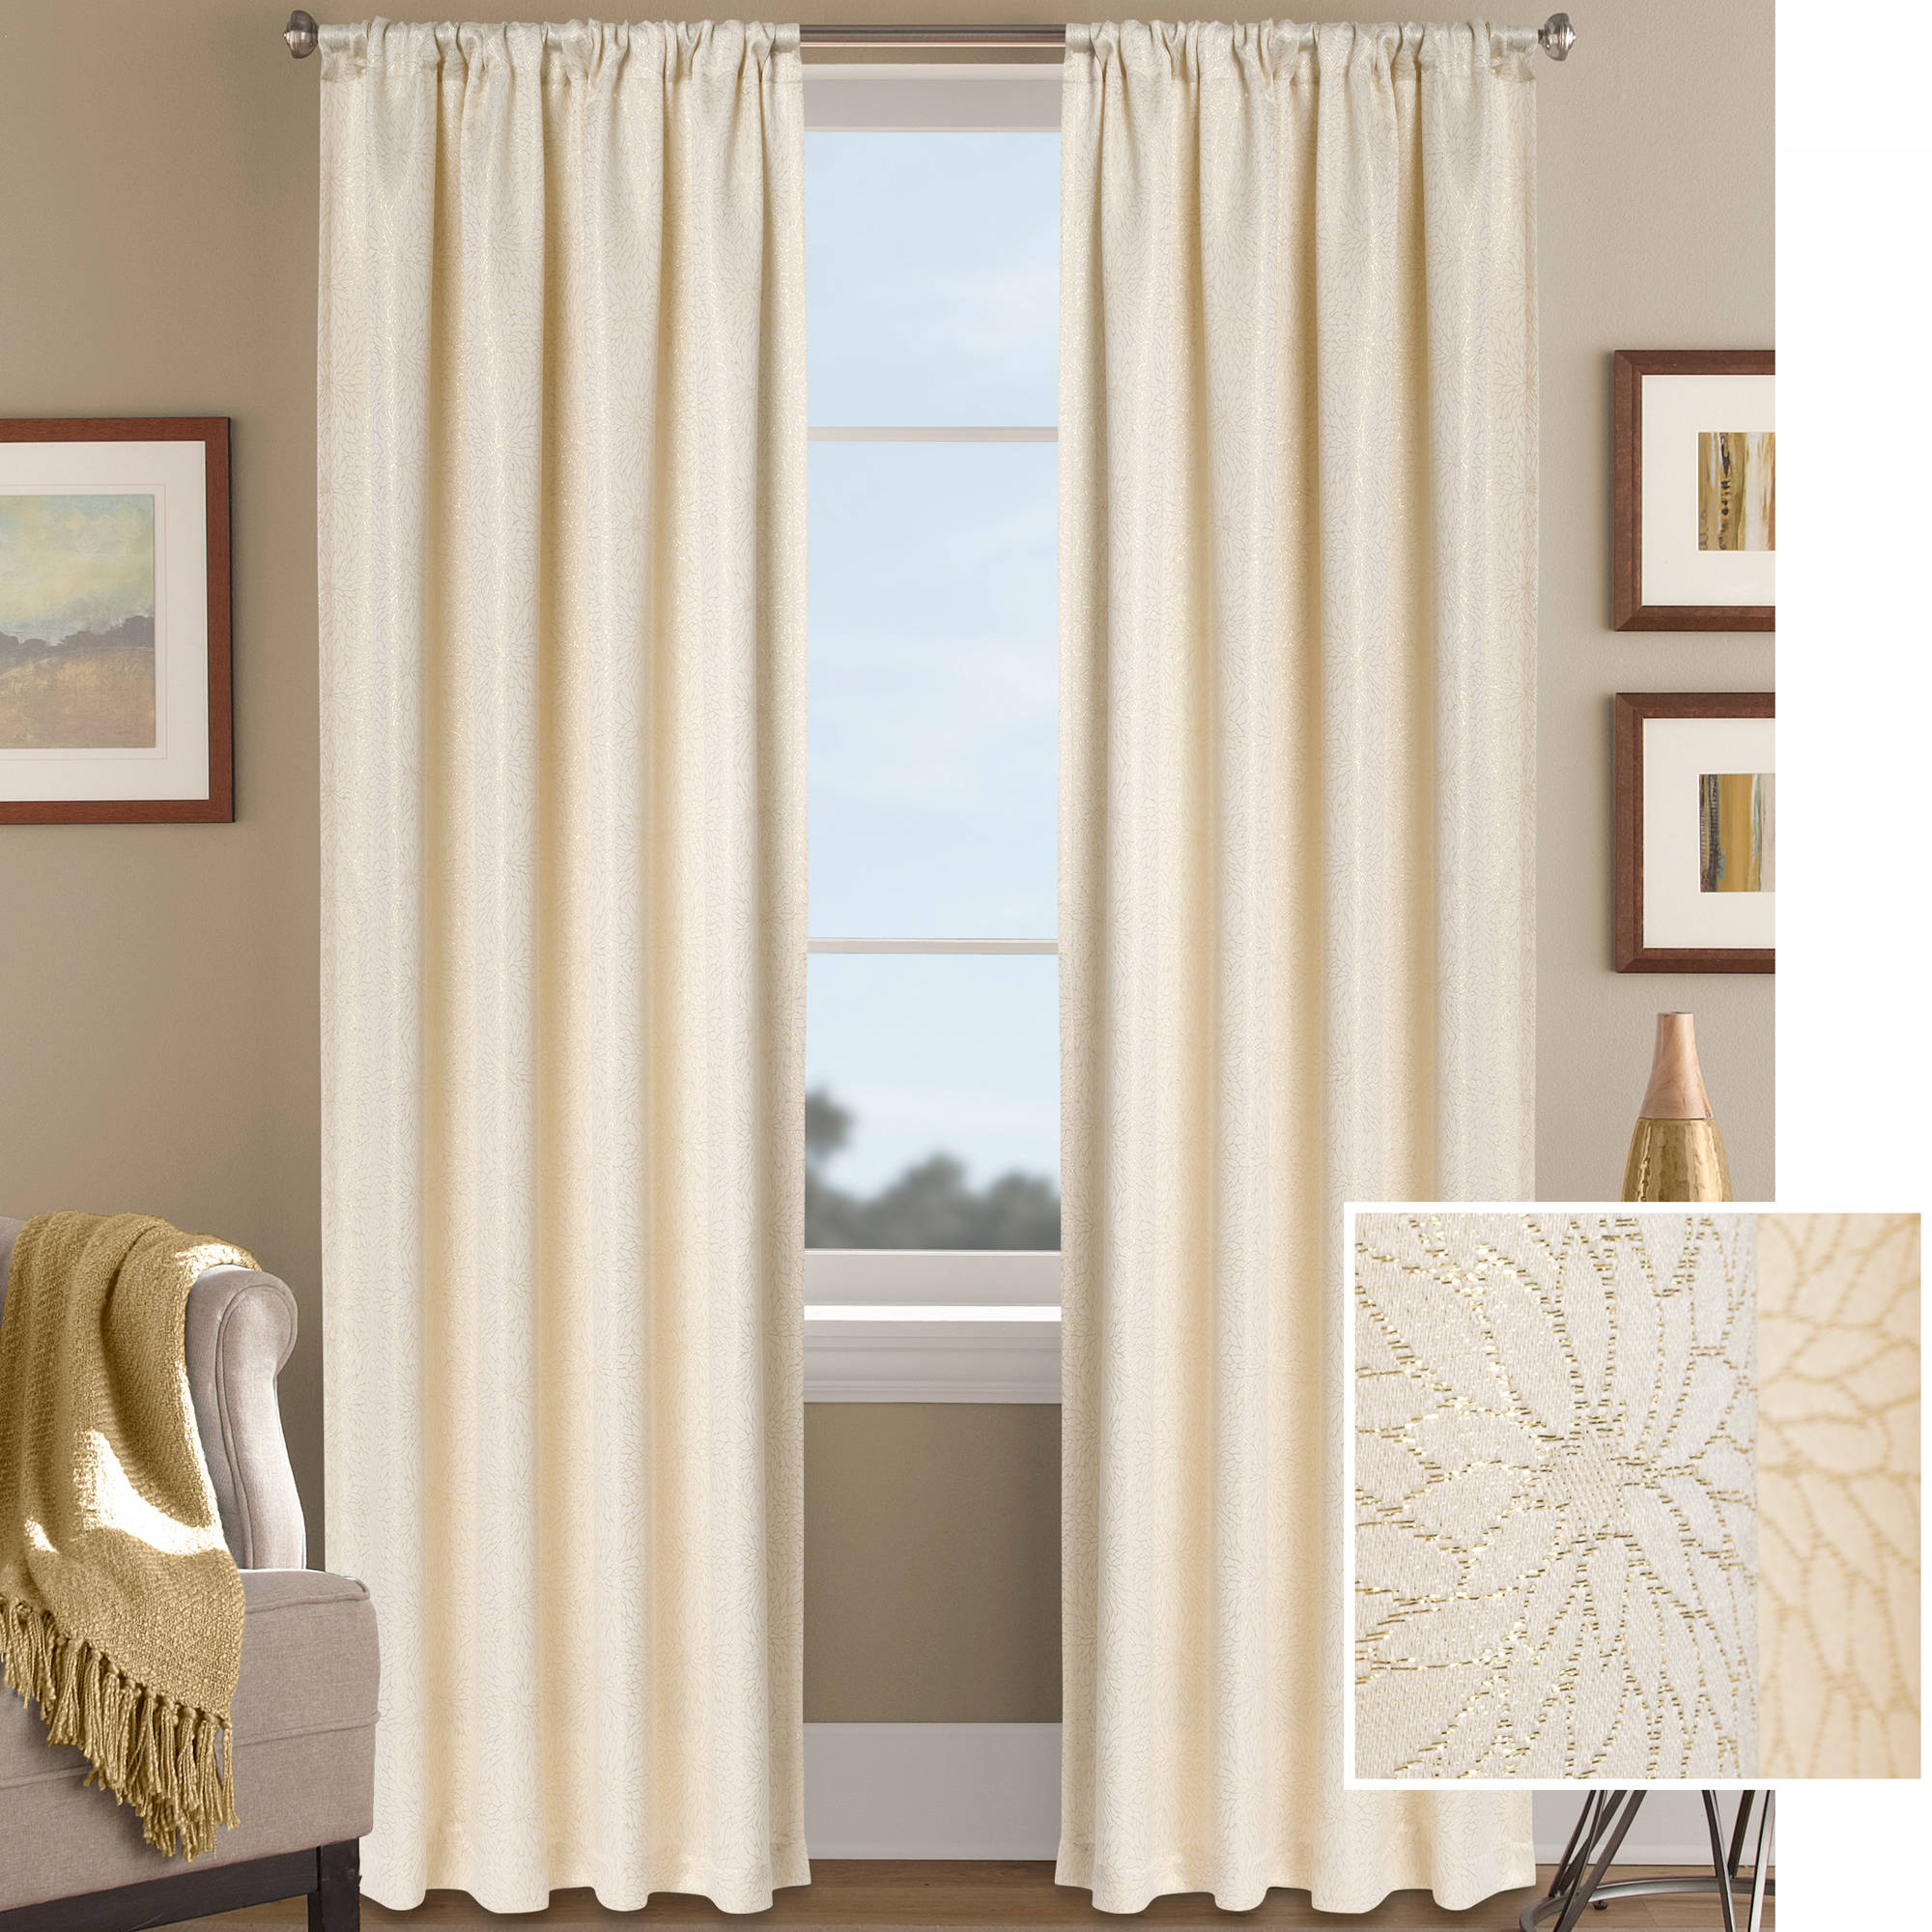 Better Homes and Gardens Metallic Floral Shimmer Jacquard Curtain Panel